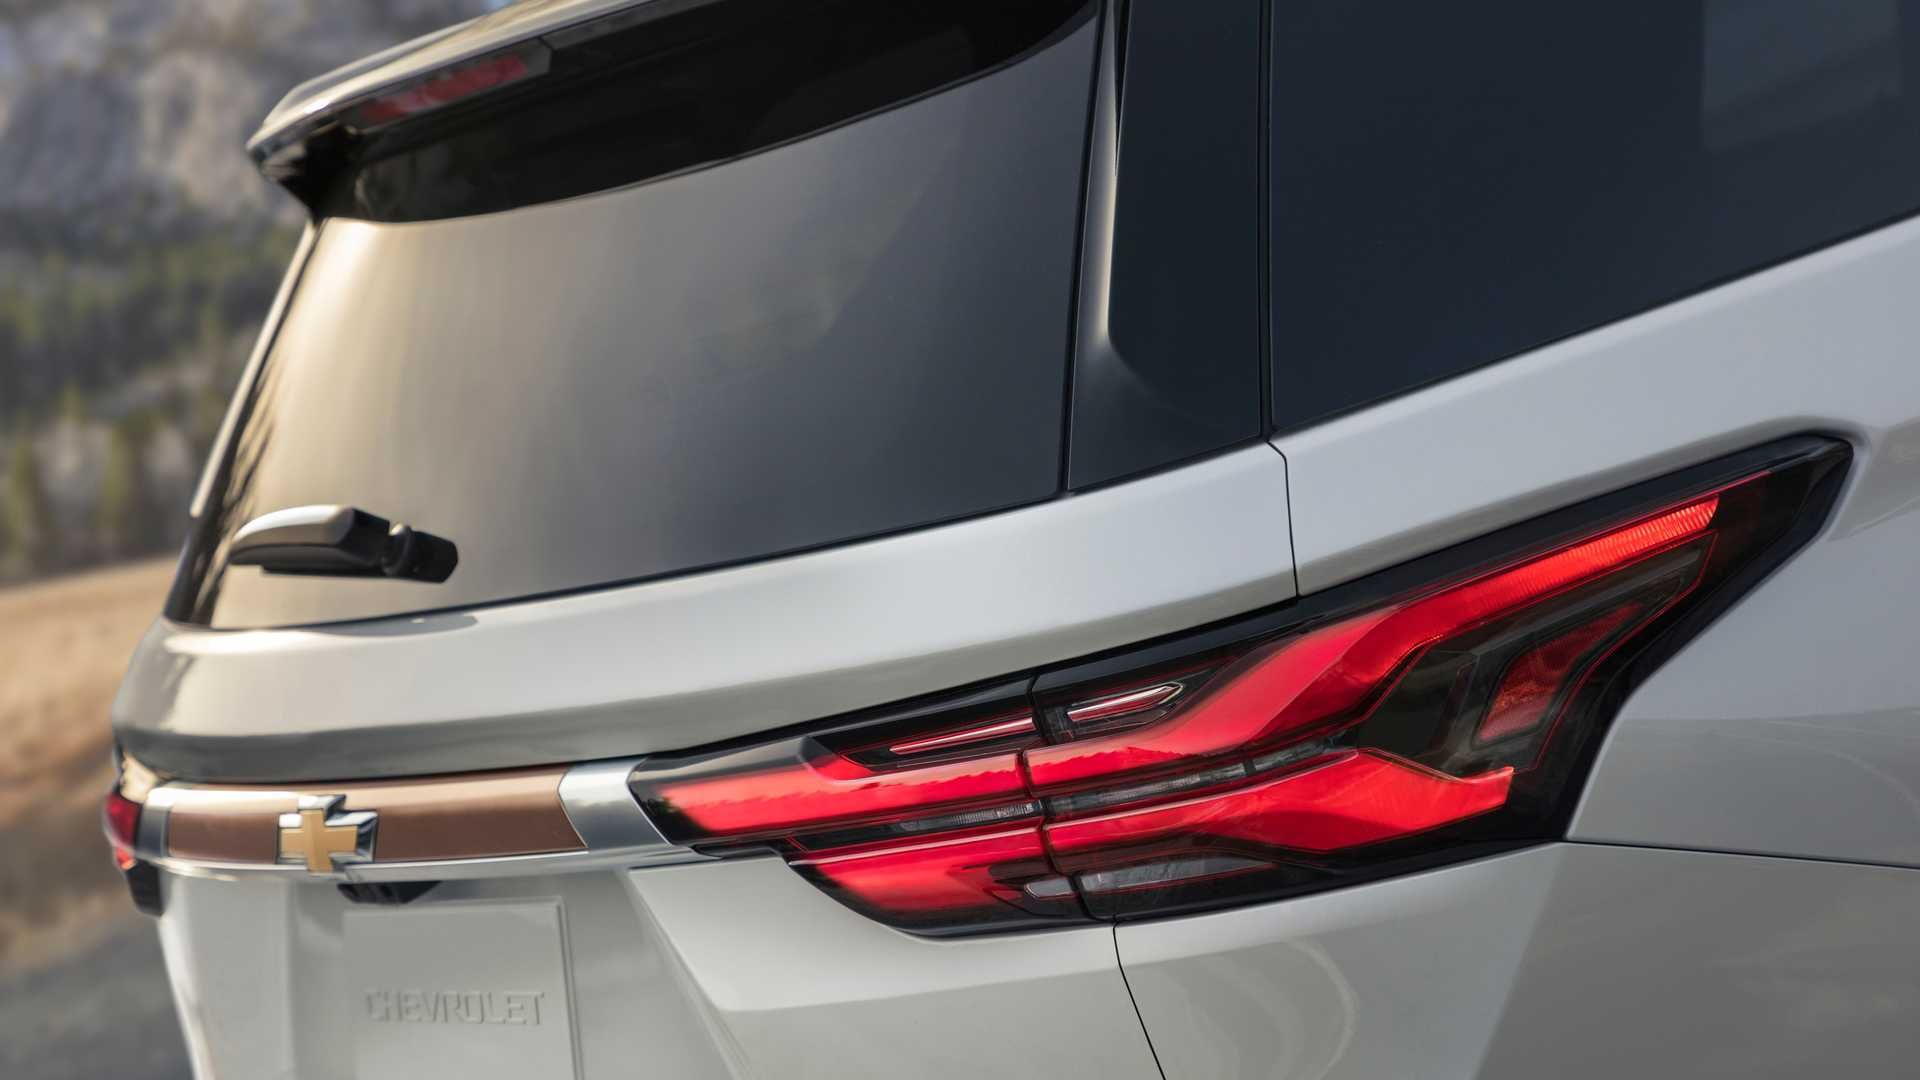 2021 Chevrolet Traverse Adds Safety Gear, Style And Cabin